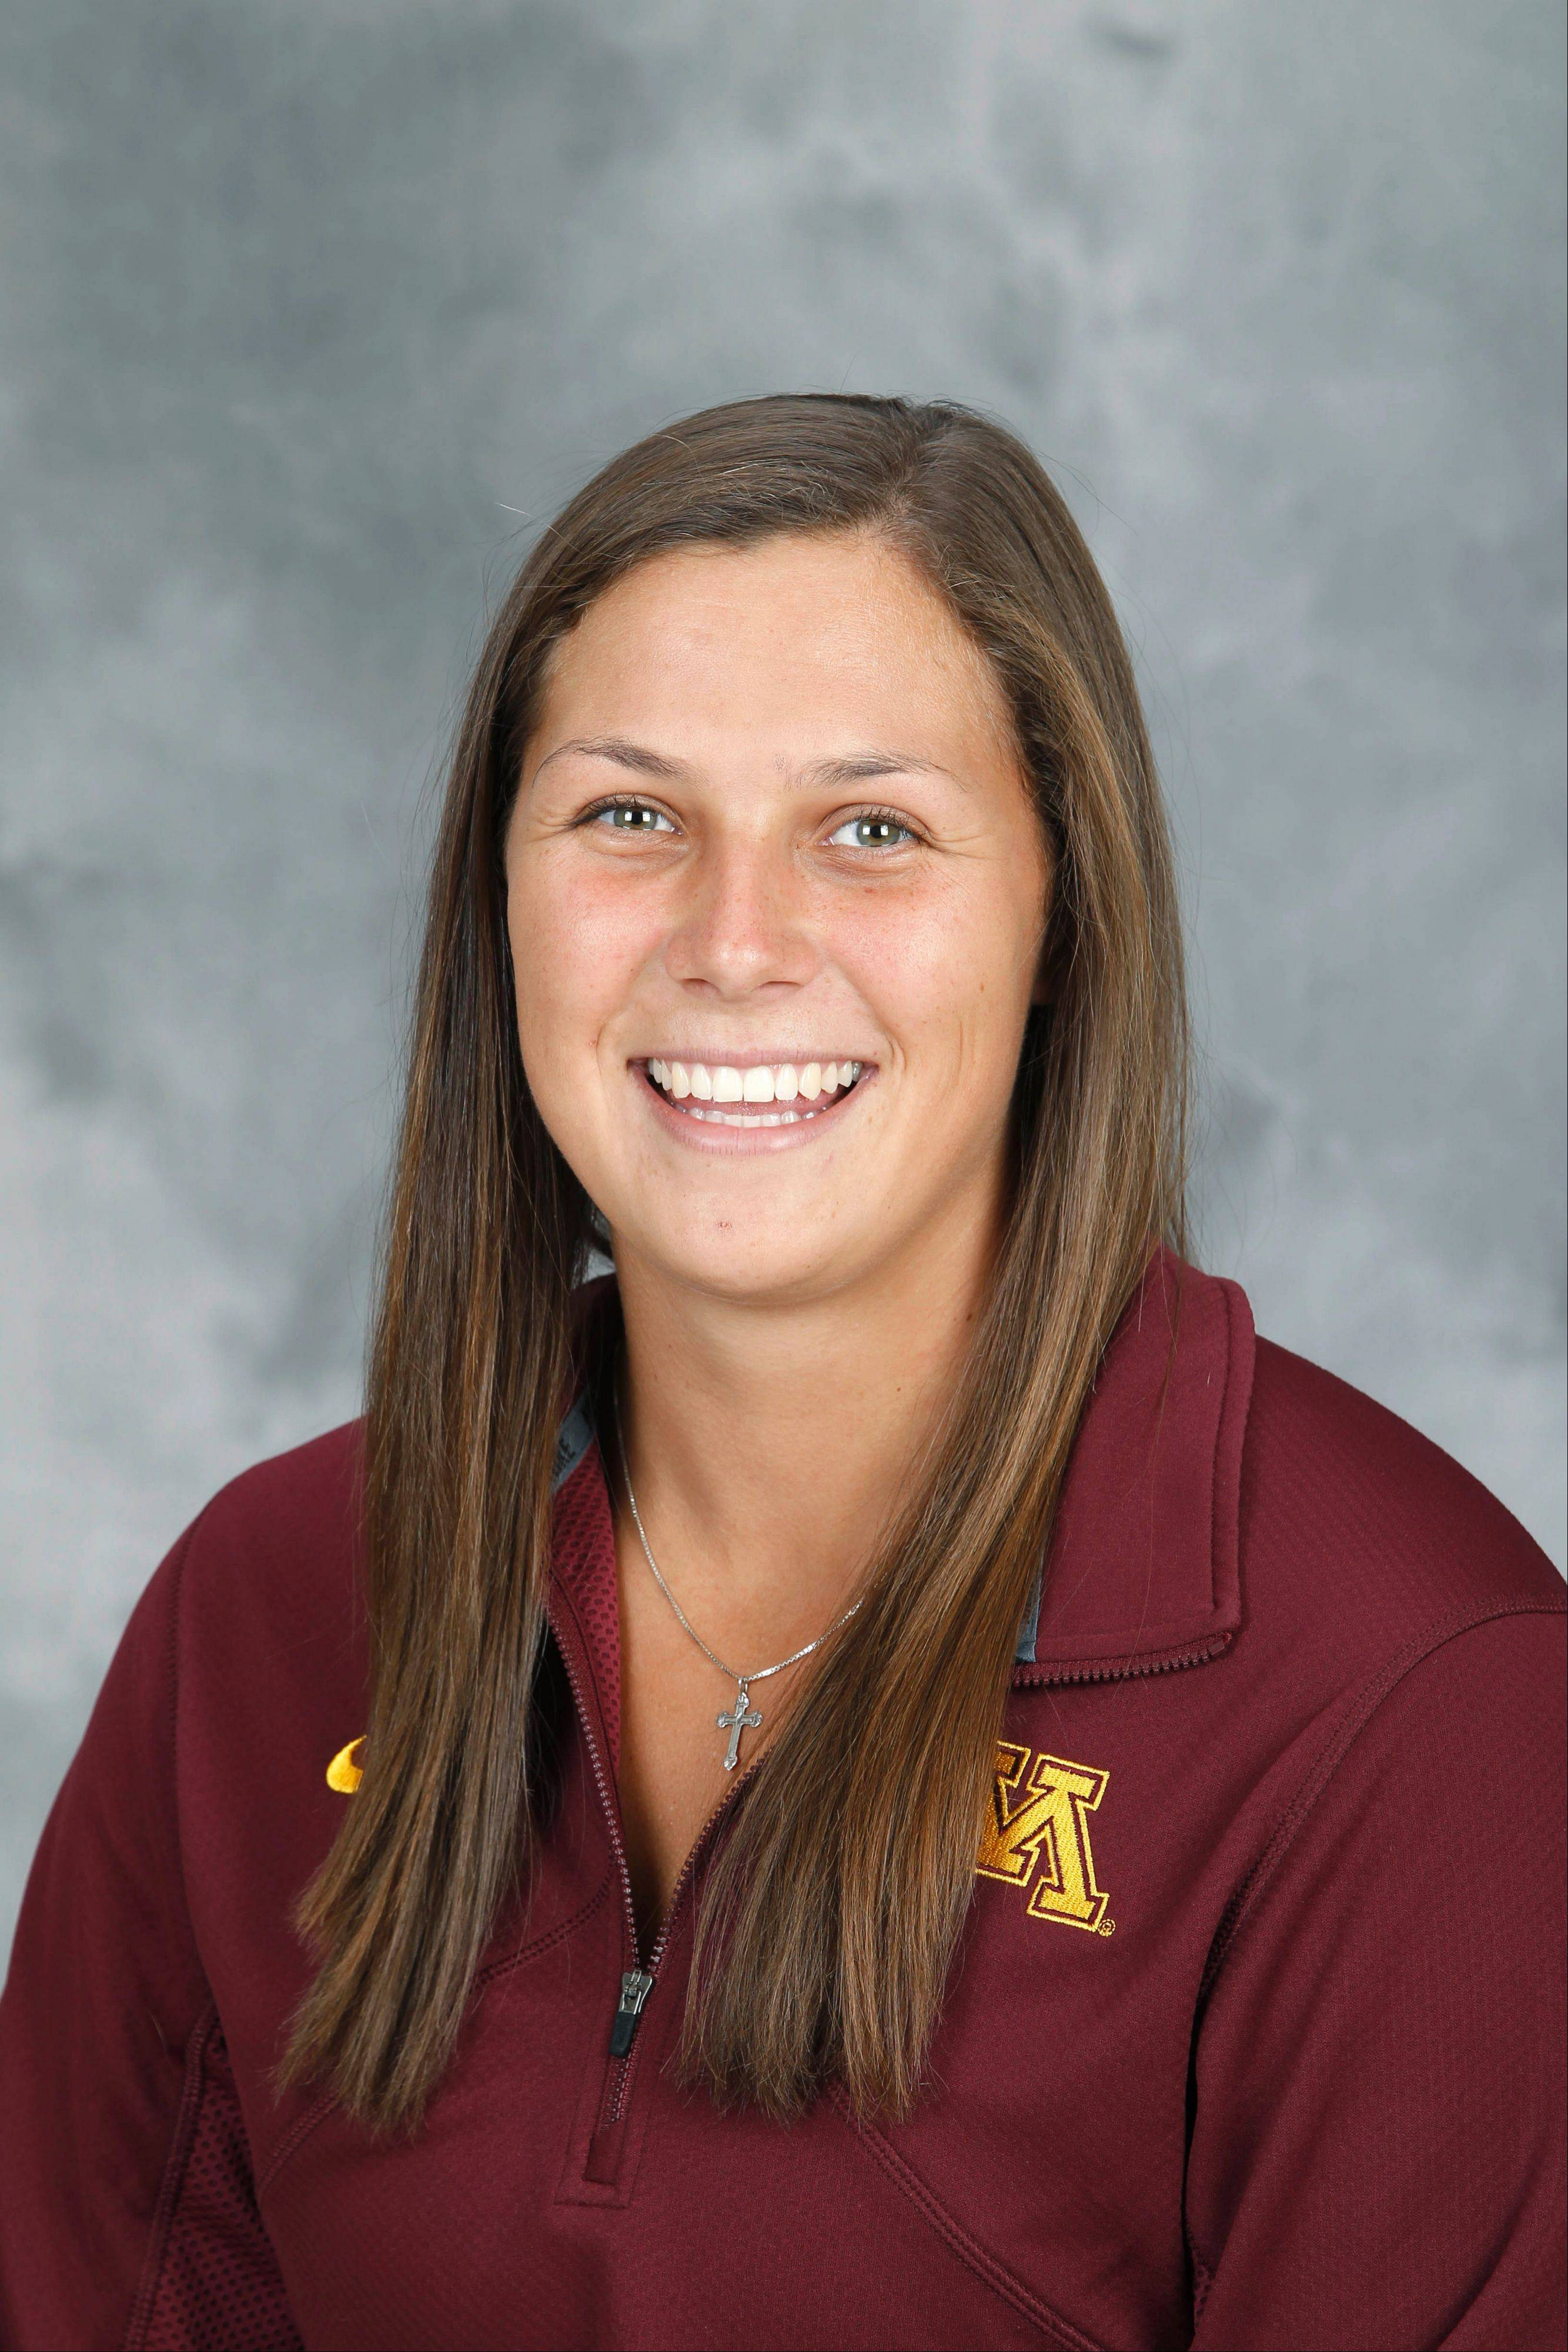 Buffalo Grove native Megan Bozek has been named to the 2014 U.S. Olympic women�s hockey team.